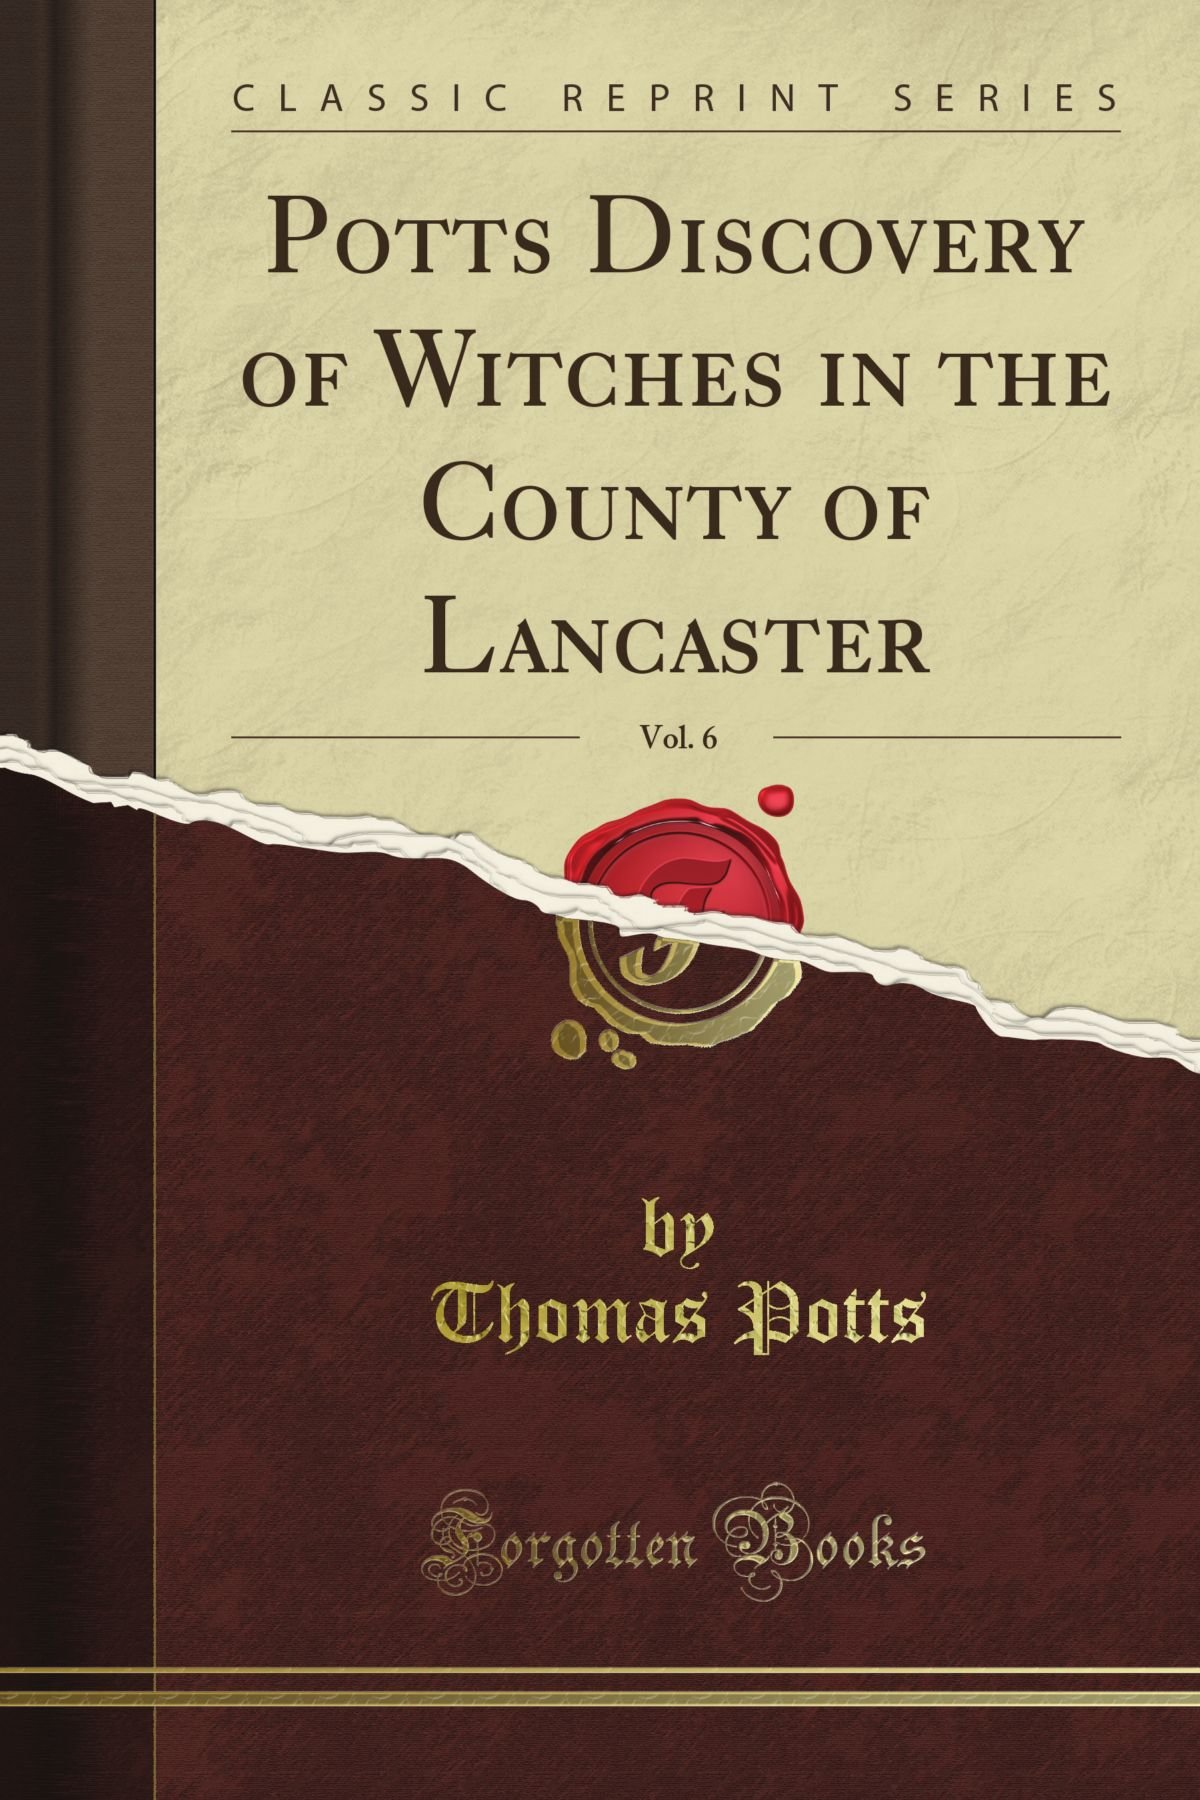 Pott's Discovery of Witches in the County of Lancaster, Vol. 6 (Classic Reprint) pdf epub